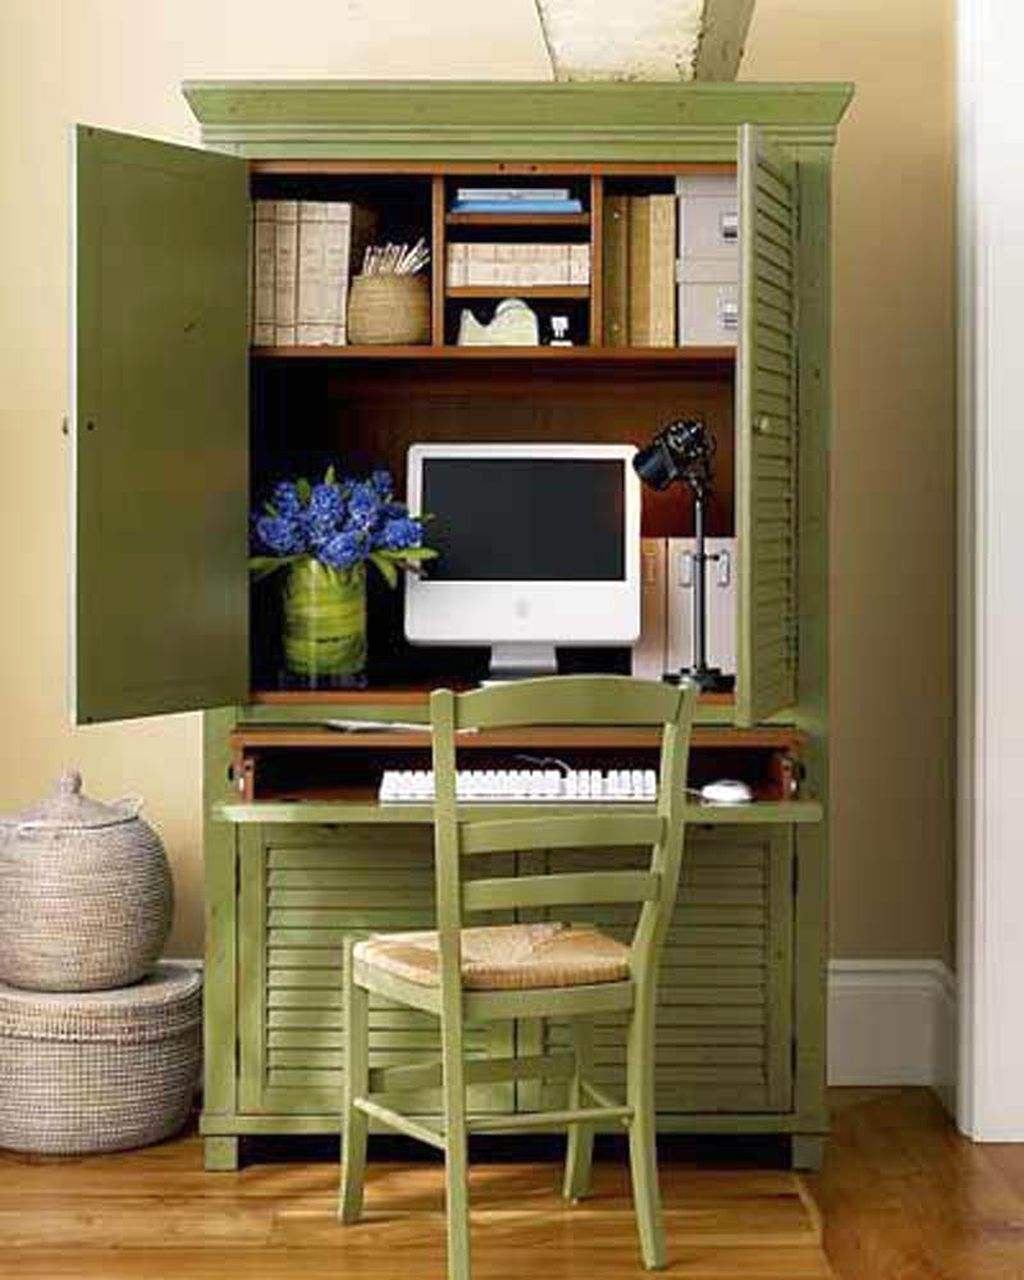 Green cupboard home office design ideas for small spaces for Home office room ideas